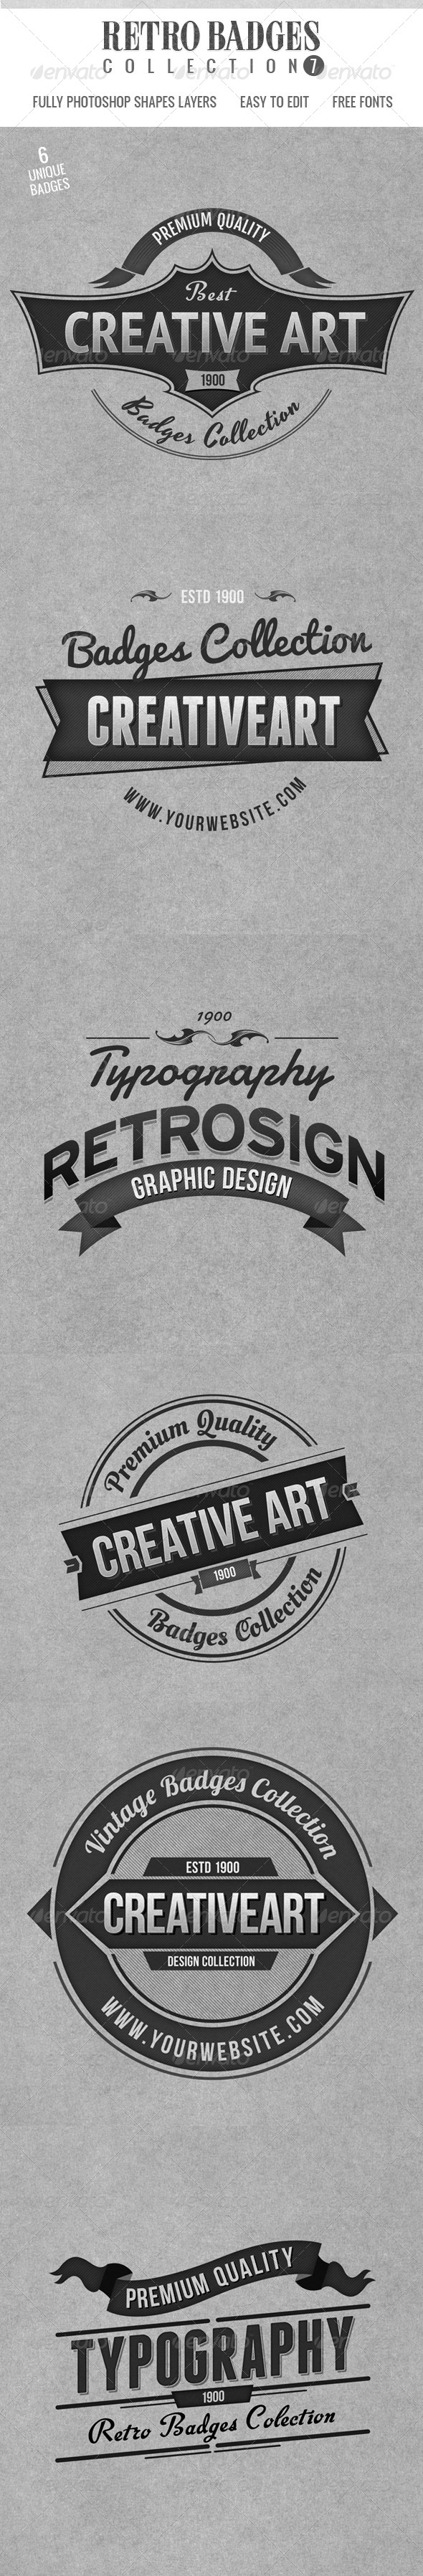 Retro Badges Col 7 - Badges & Stickers Web Elements